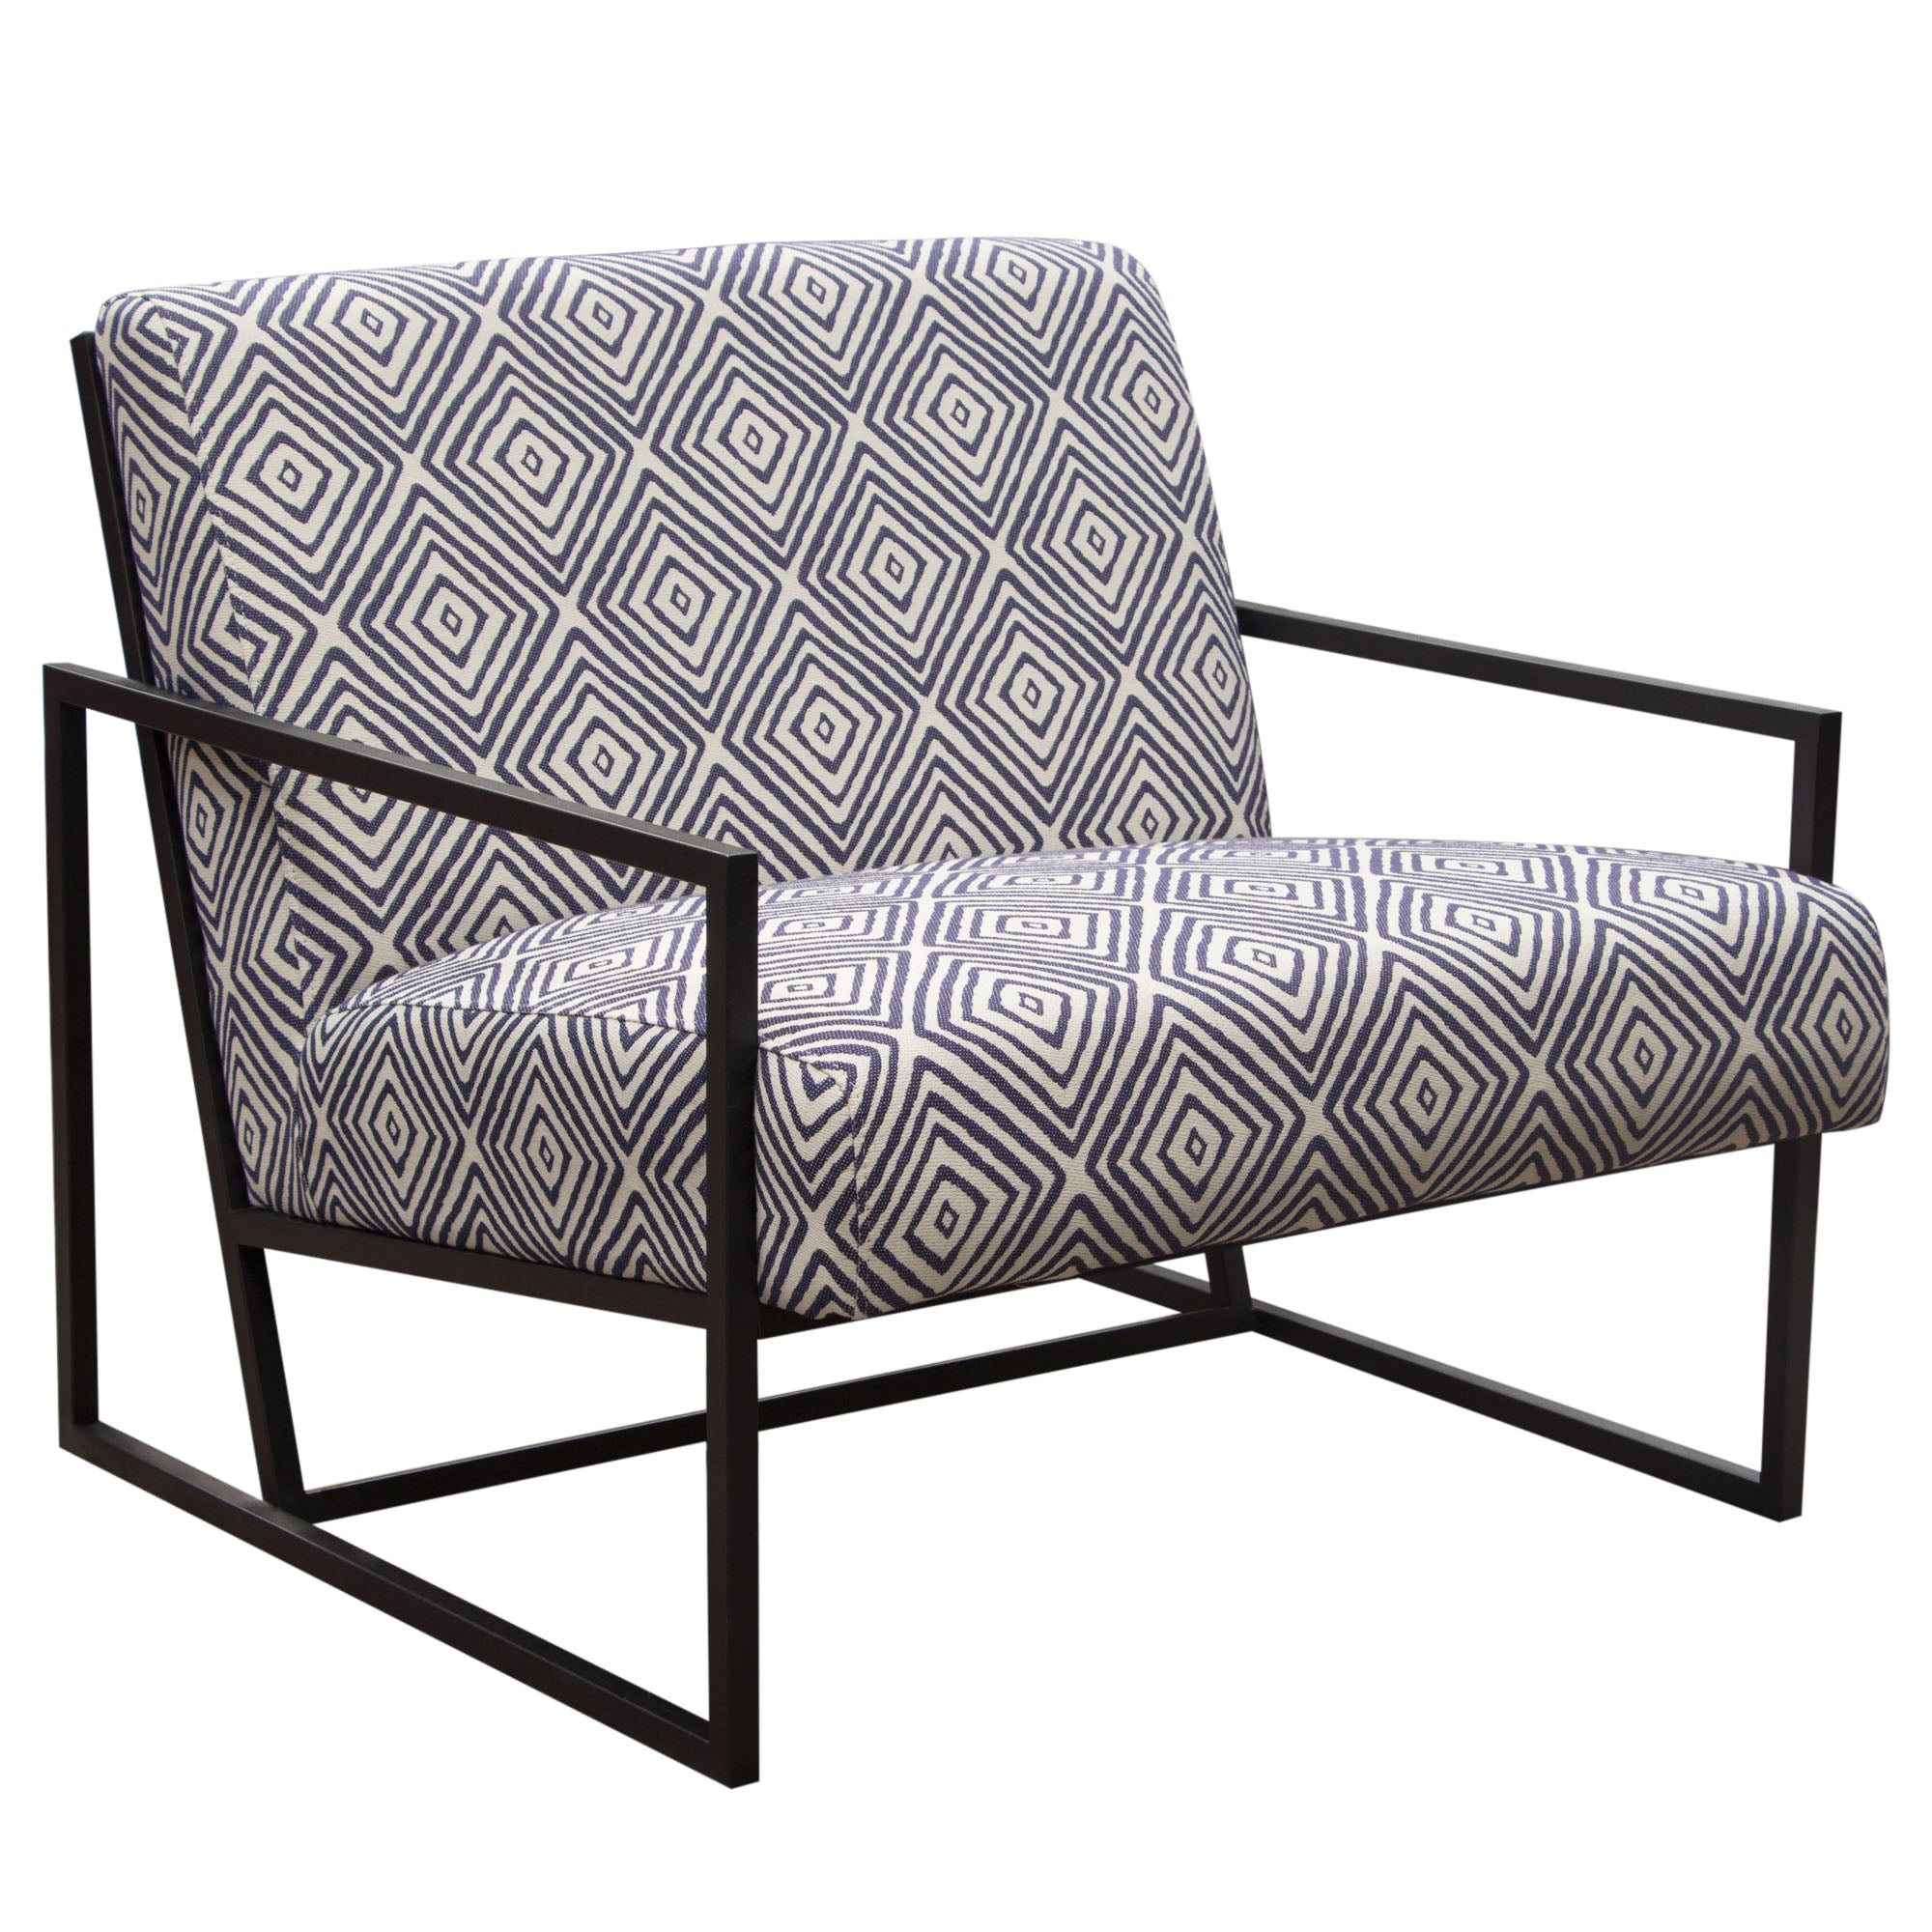 Luxe Accent Chair in Navy-White